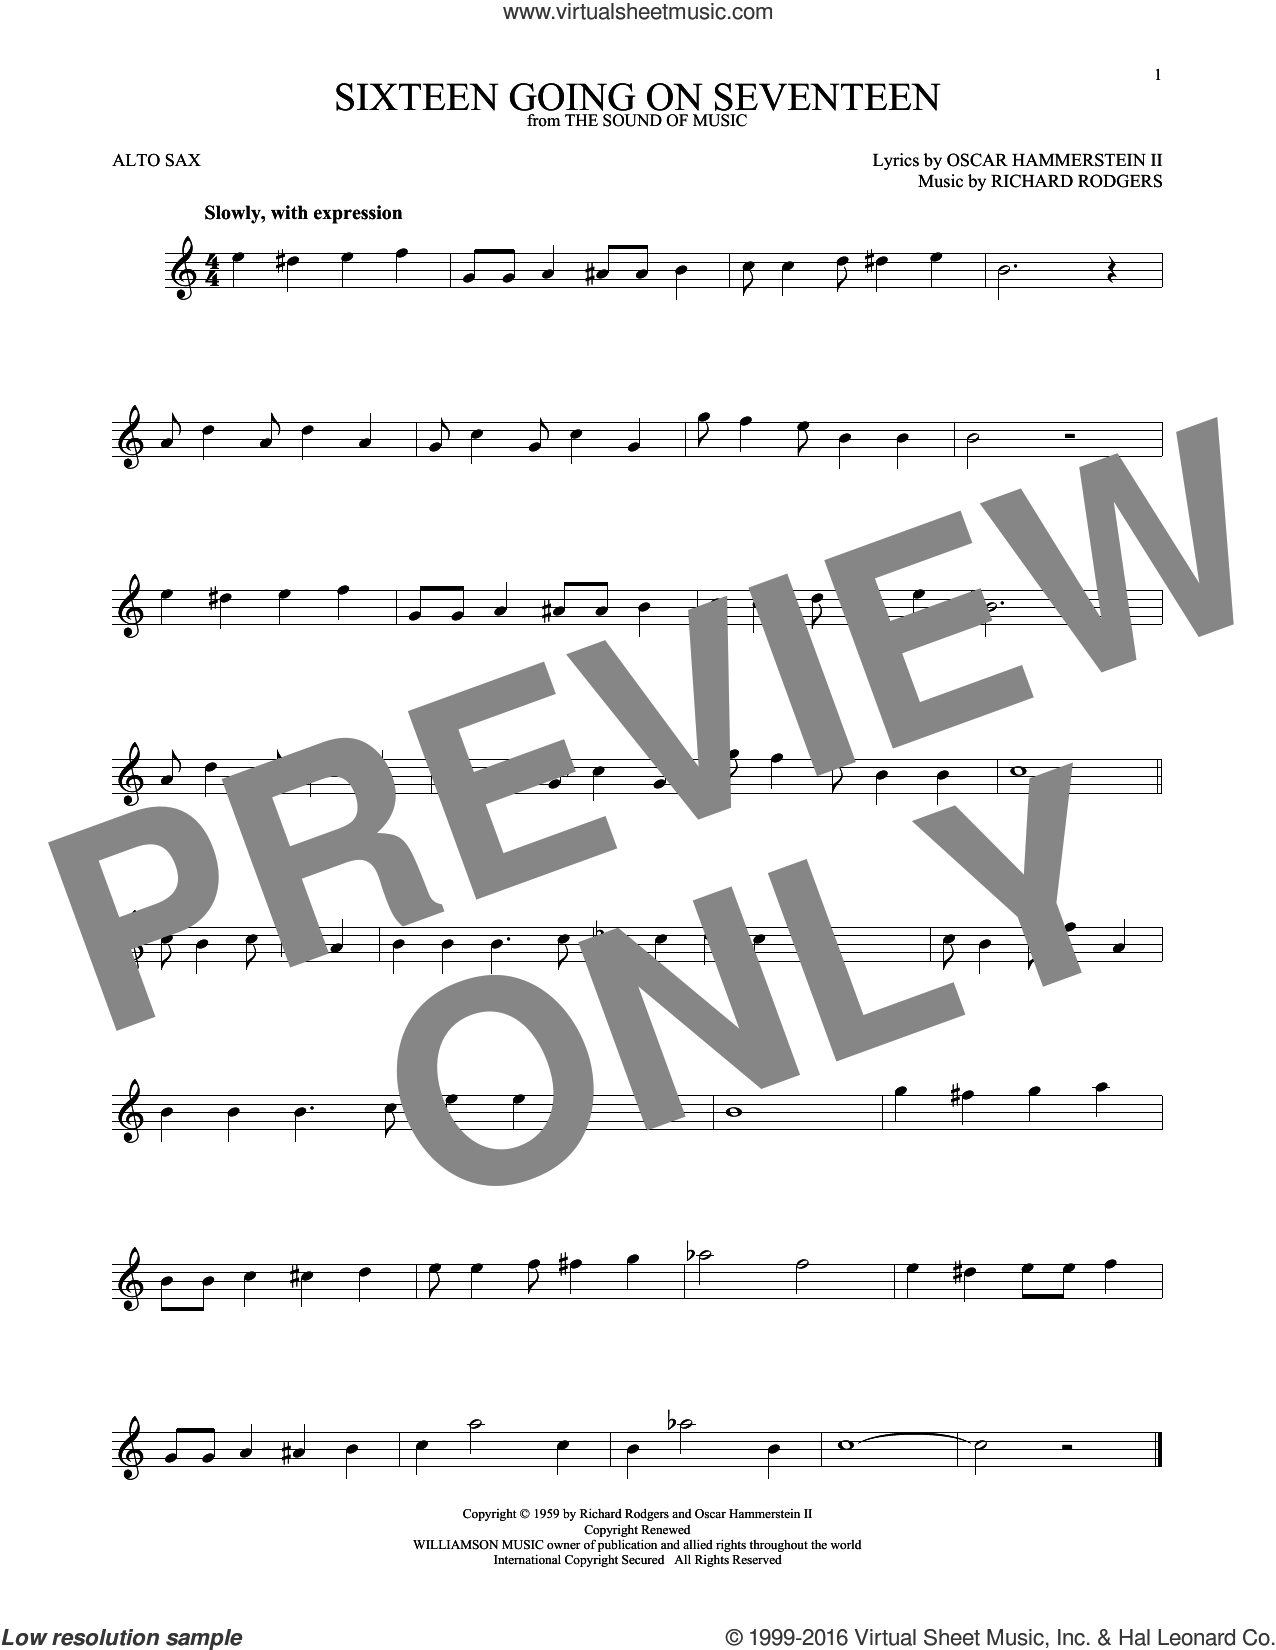 Sixteen Going On Seventeen sheet music for alto saxophone solo by Rodgers & Hammerstein, Oscar II Hammerstein and Richard Rodgers, intermediate skill level